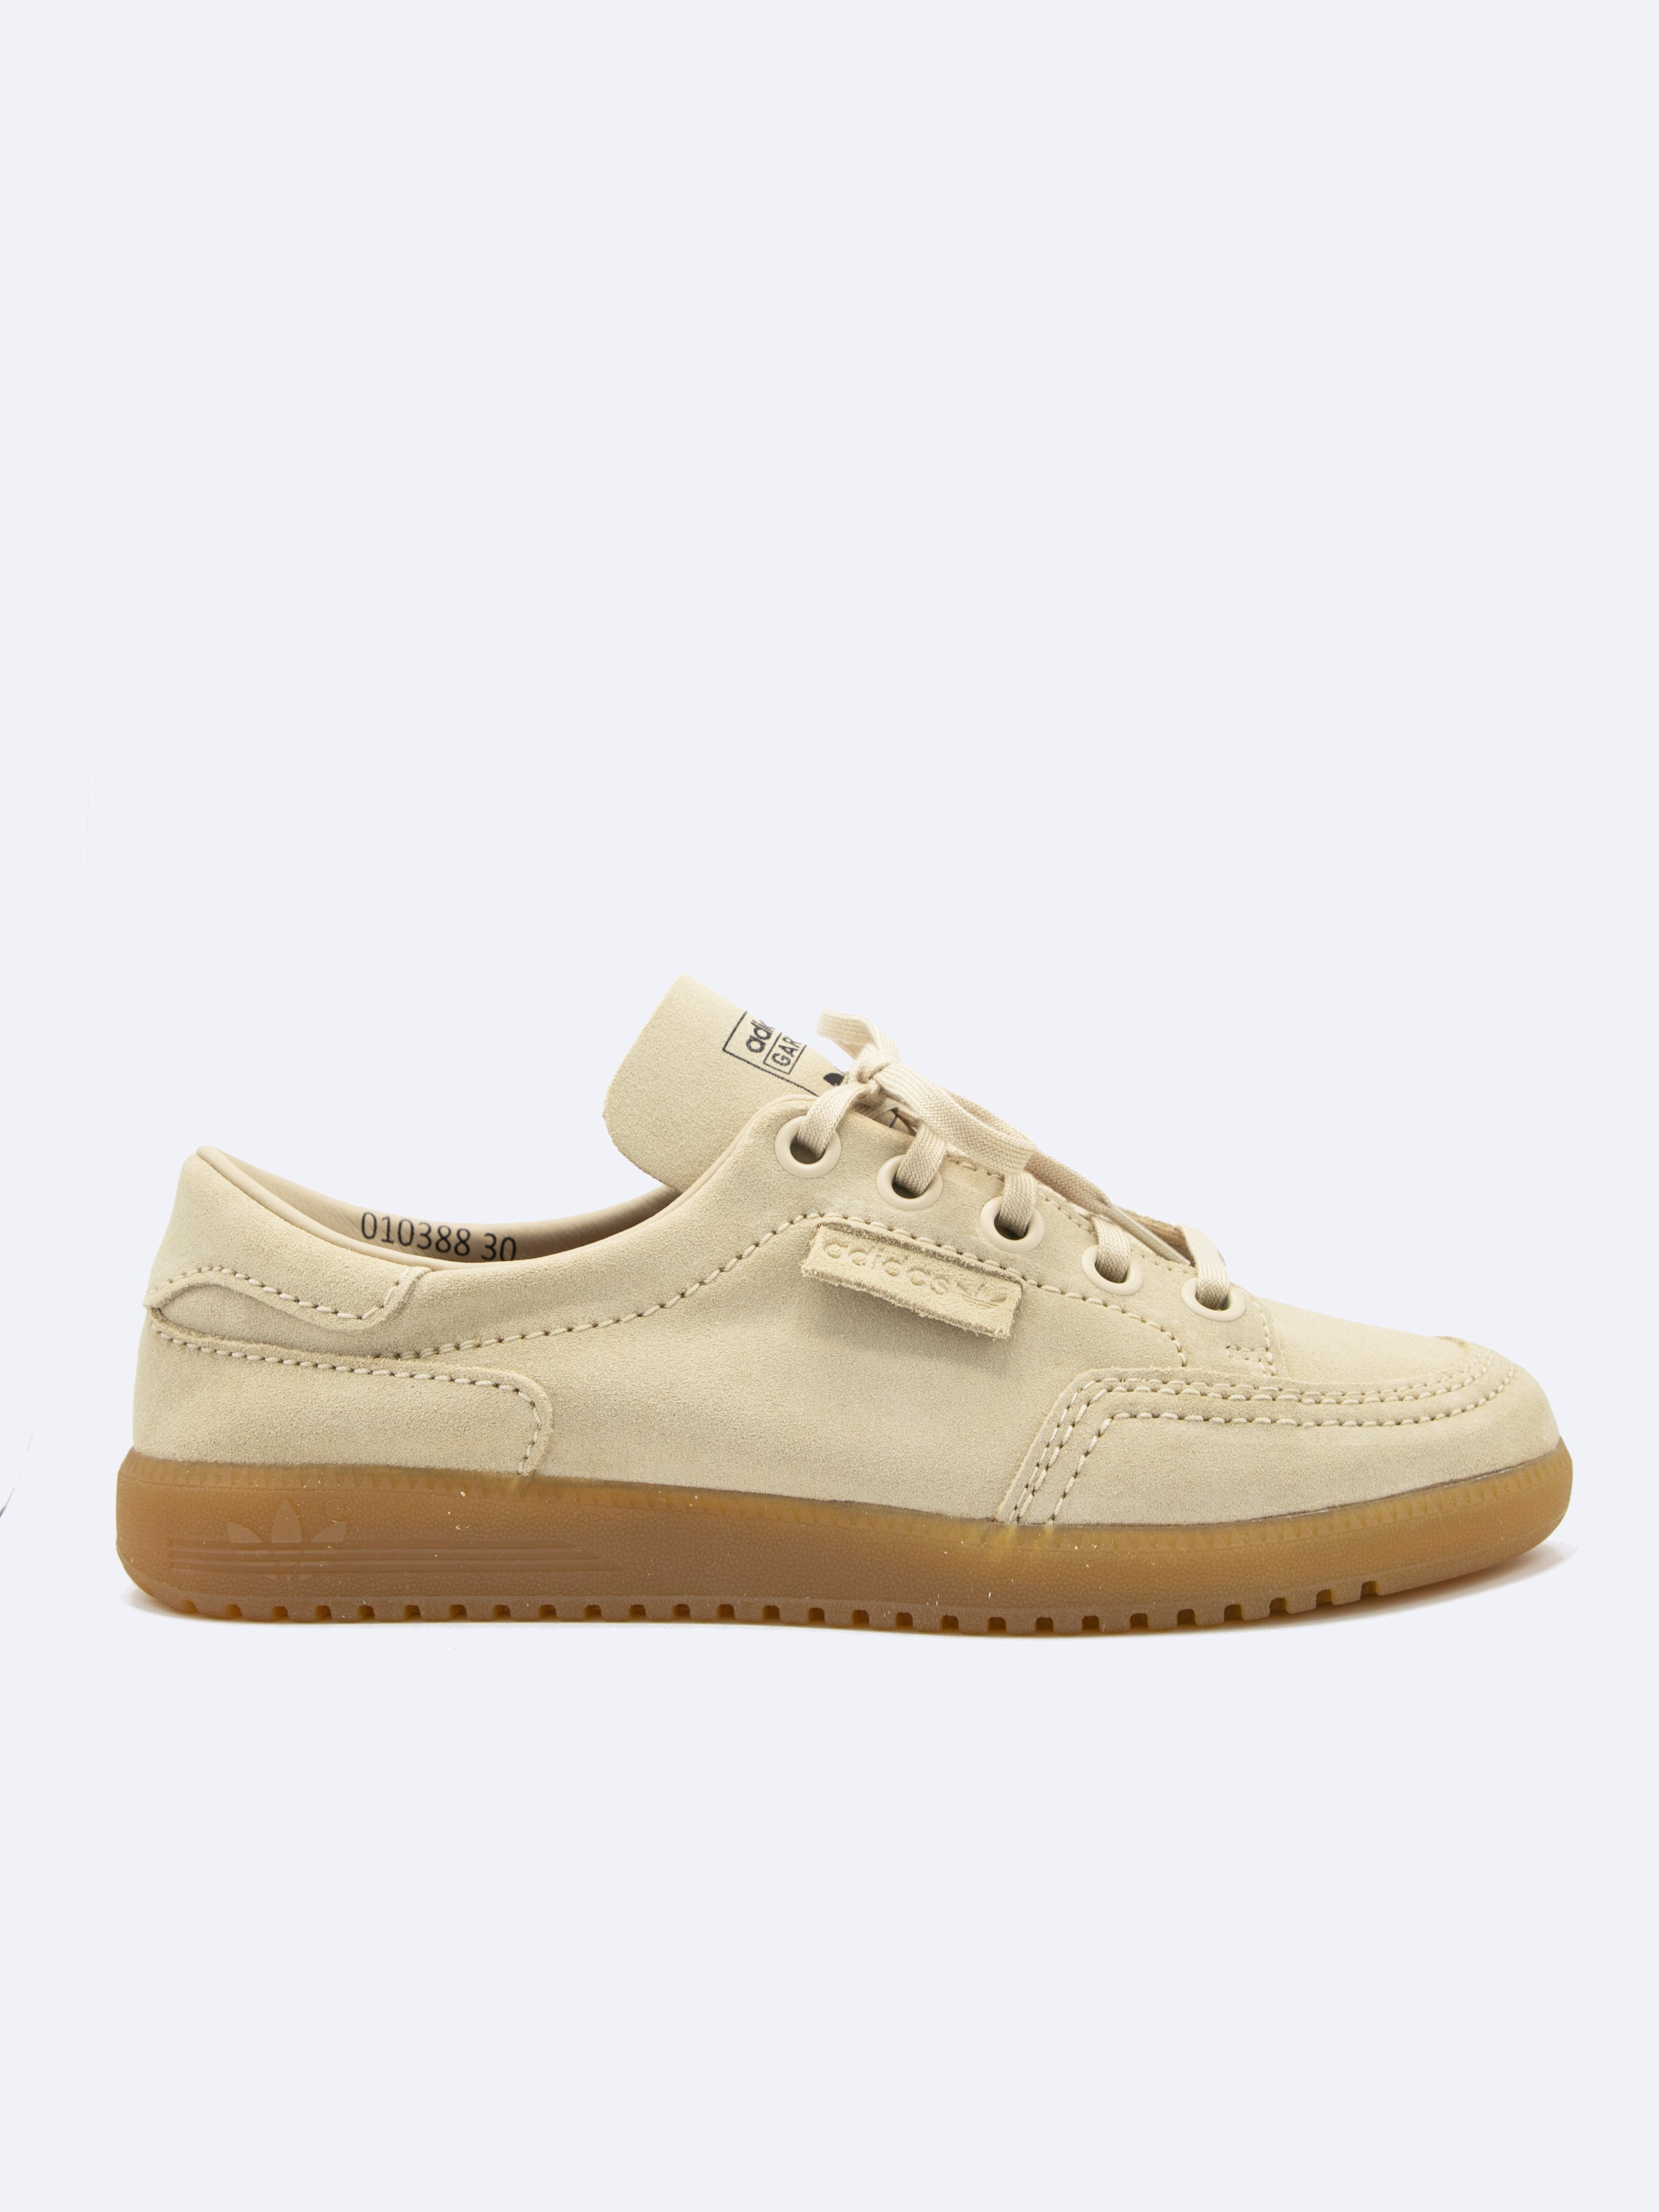 the latest 7bc1c 3a113 Buy Adidas Garwen Spezial (UNION) Online at UNION LOS ANGELE